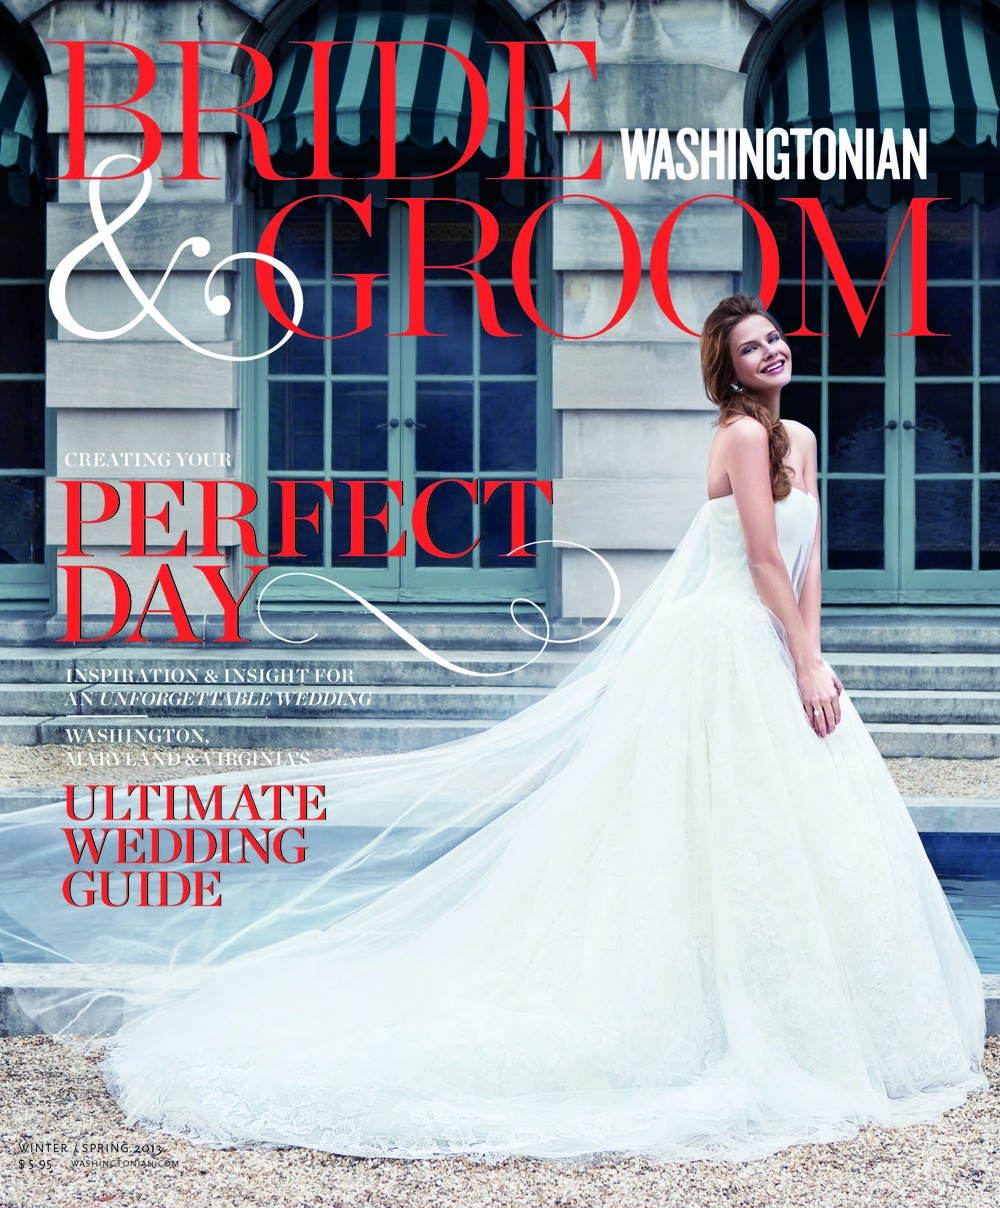 Washingtonian Bride & Groom // Spring 2013